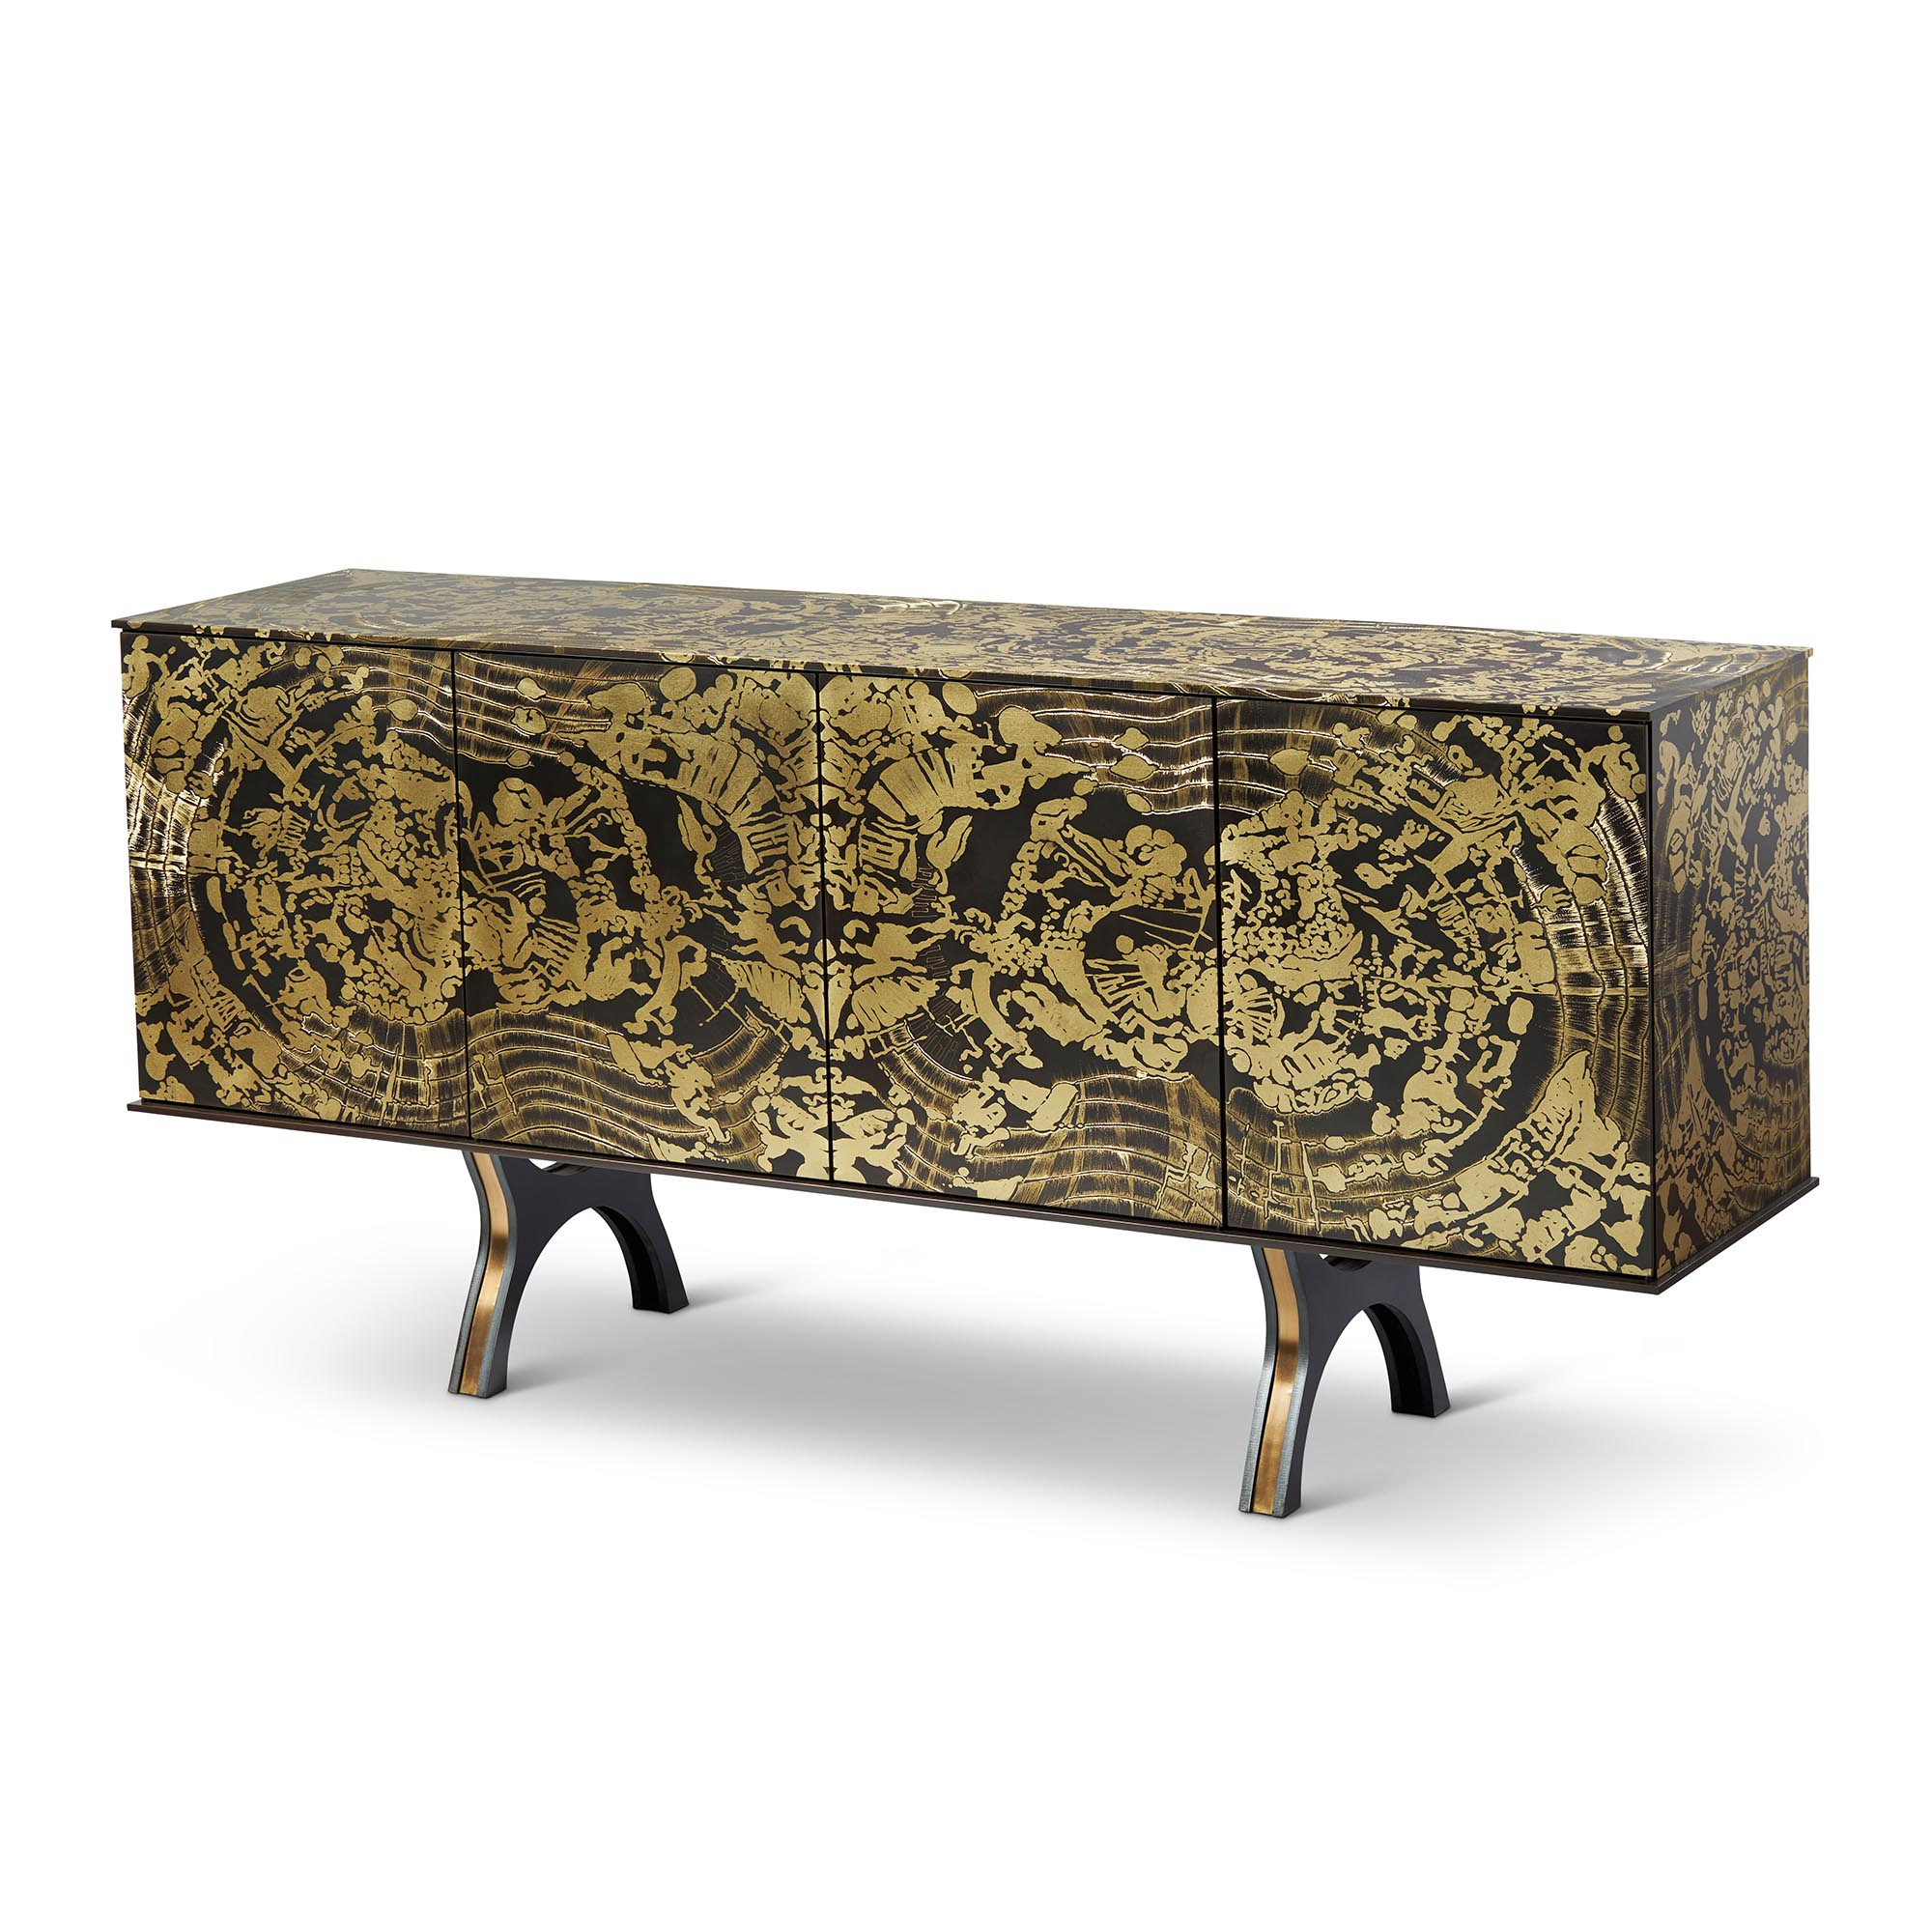 Tuell and Reynolds - Rorschach Sideboard Cabinet